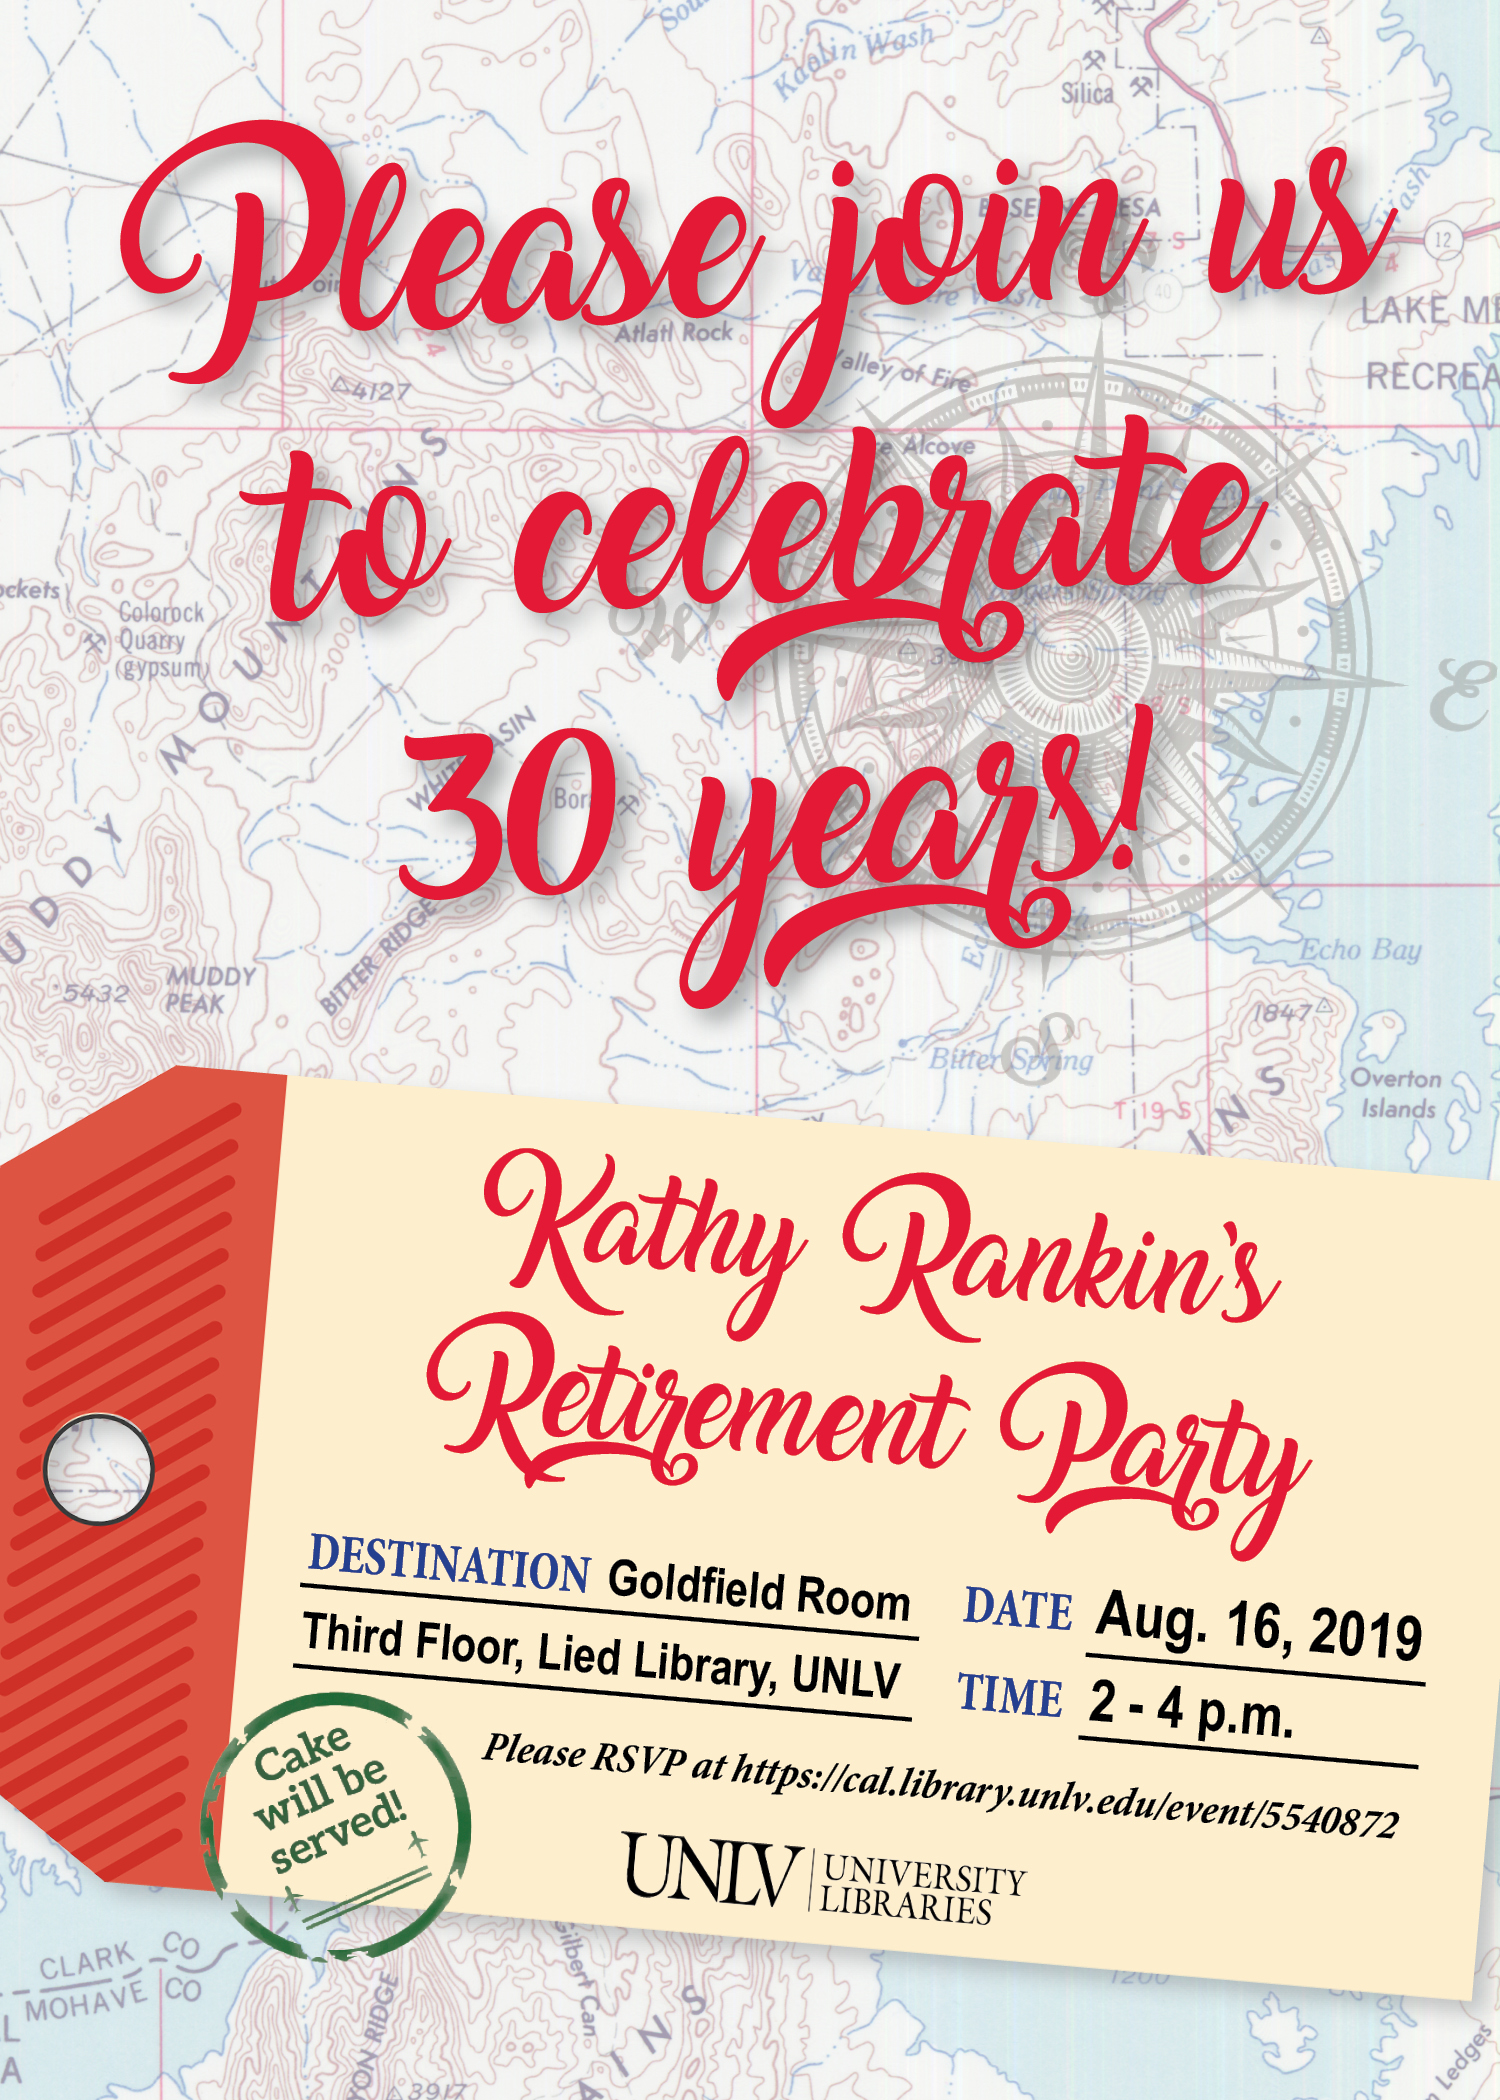 Kathy Rankin's Retirement Party